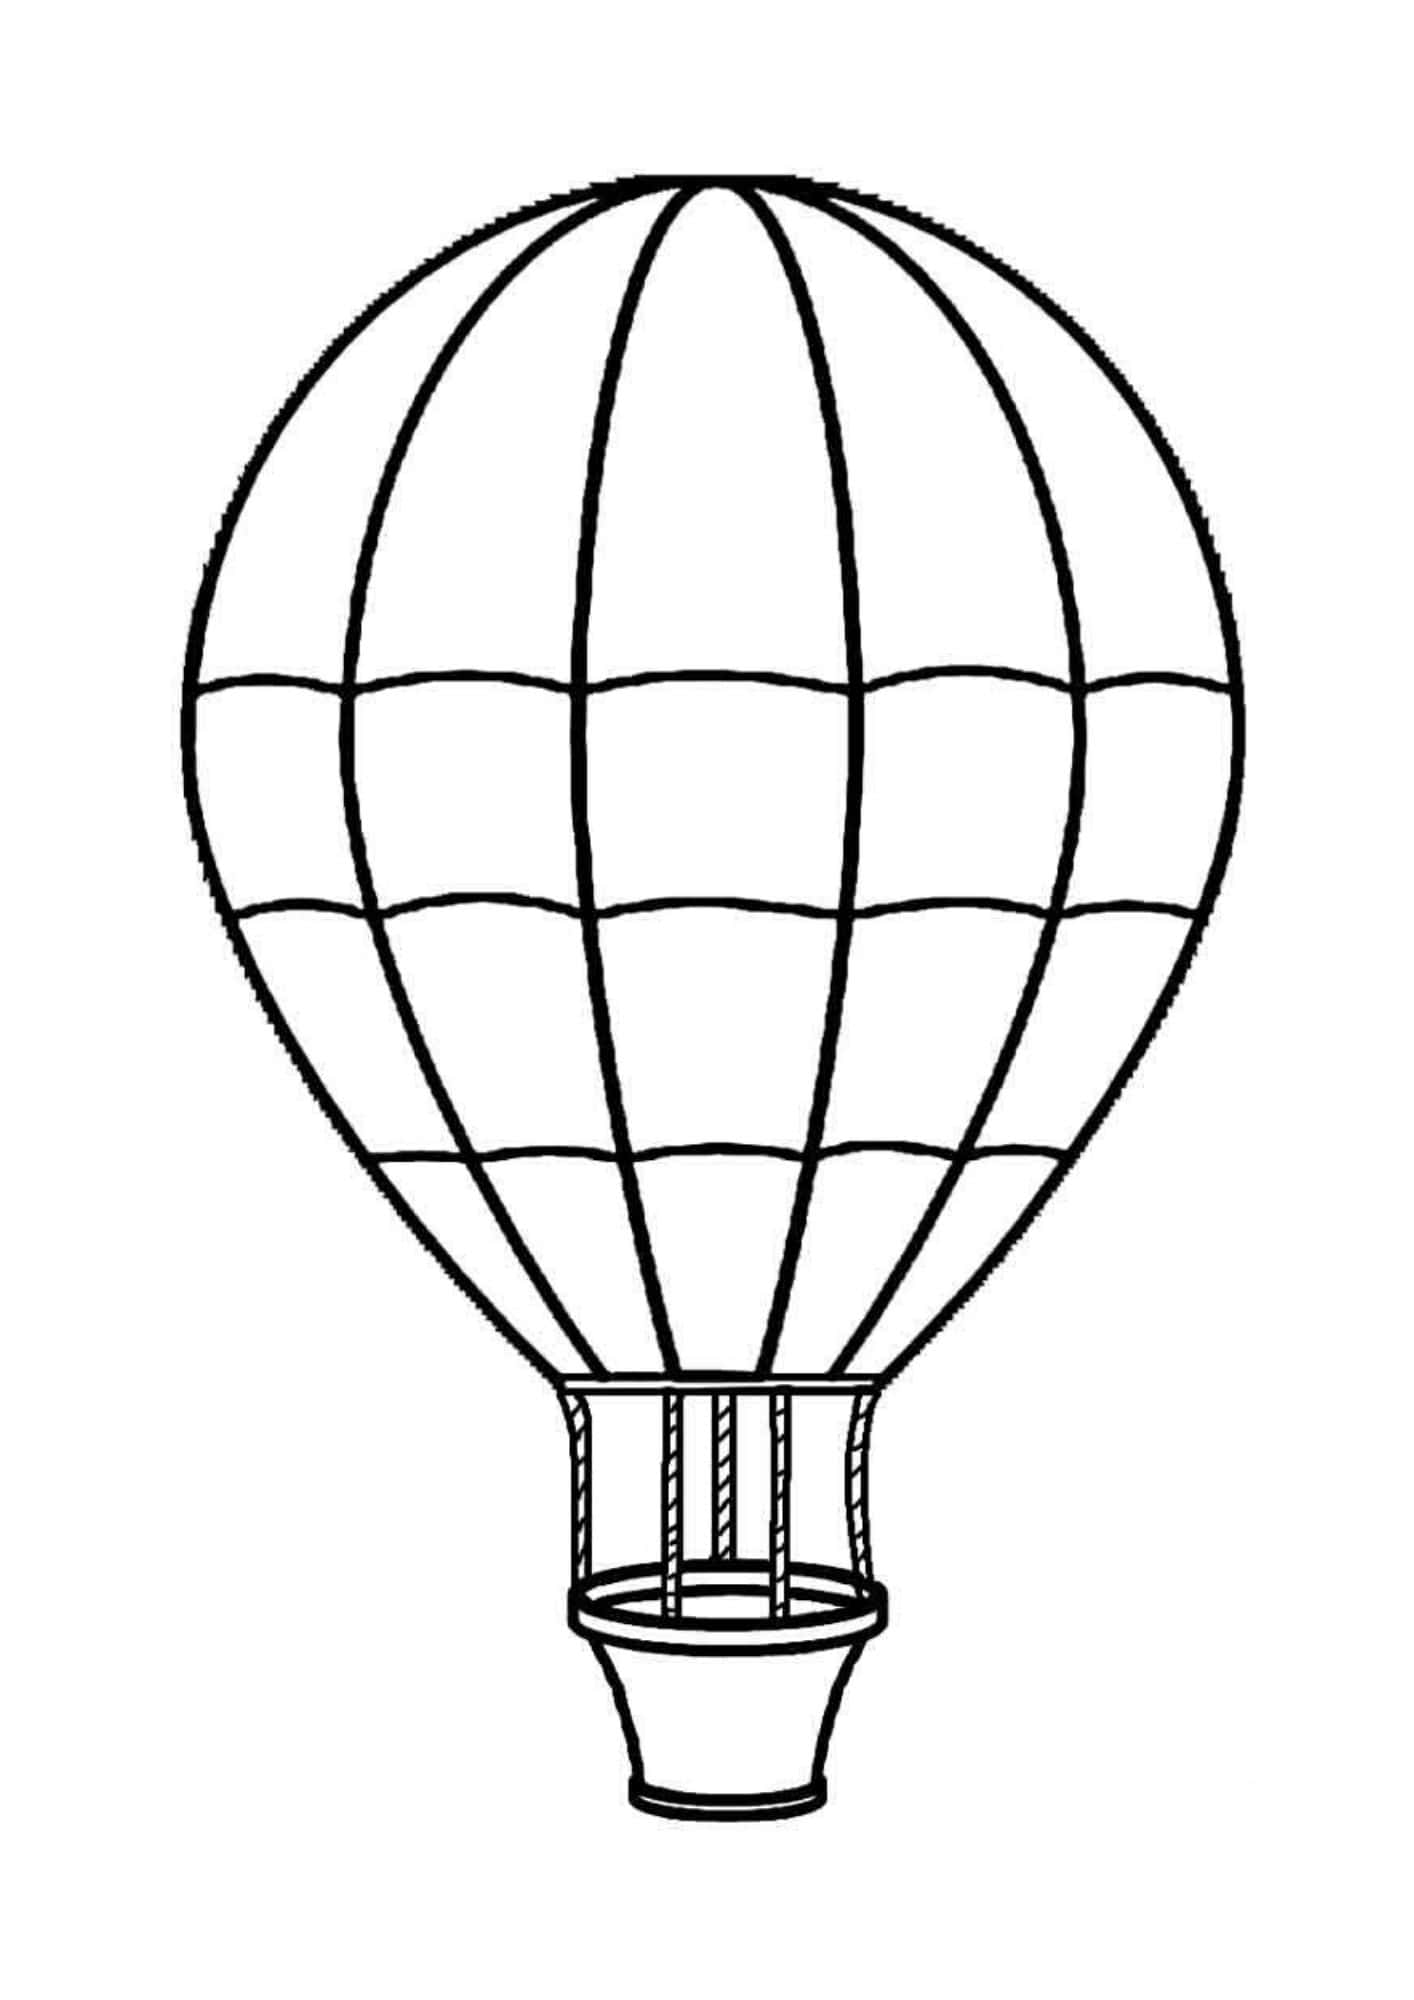 hot air balloon sketch the lost sock search results for perspective air sketch hot air balloon